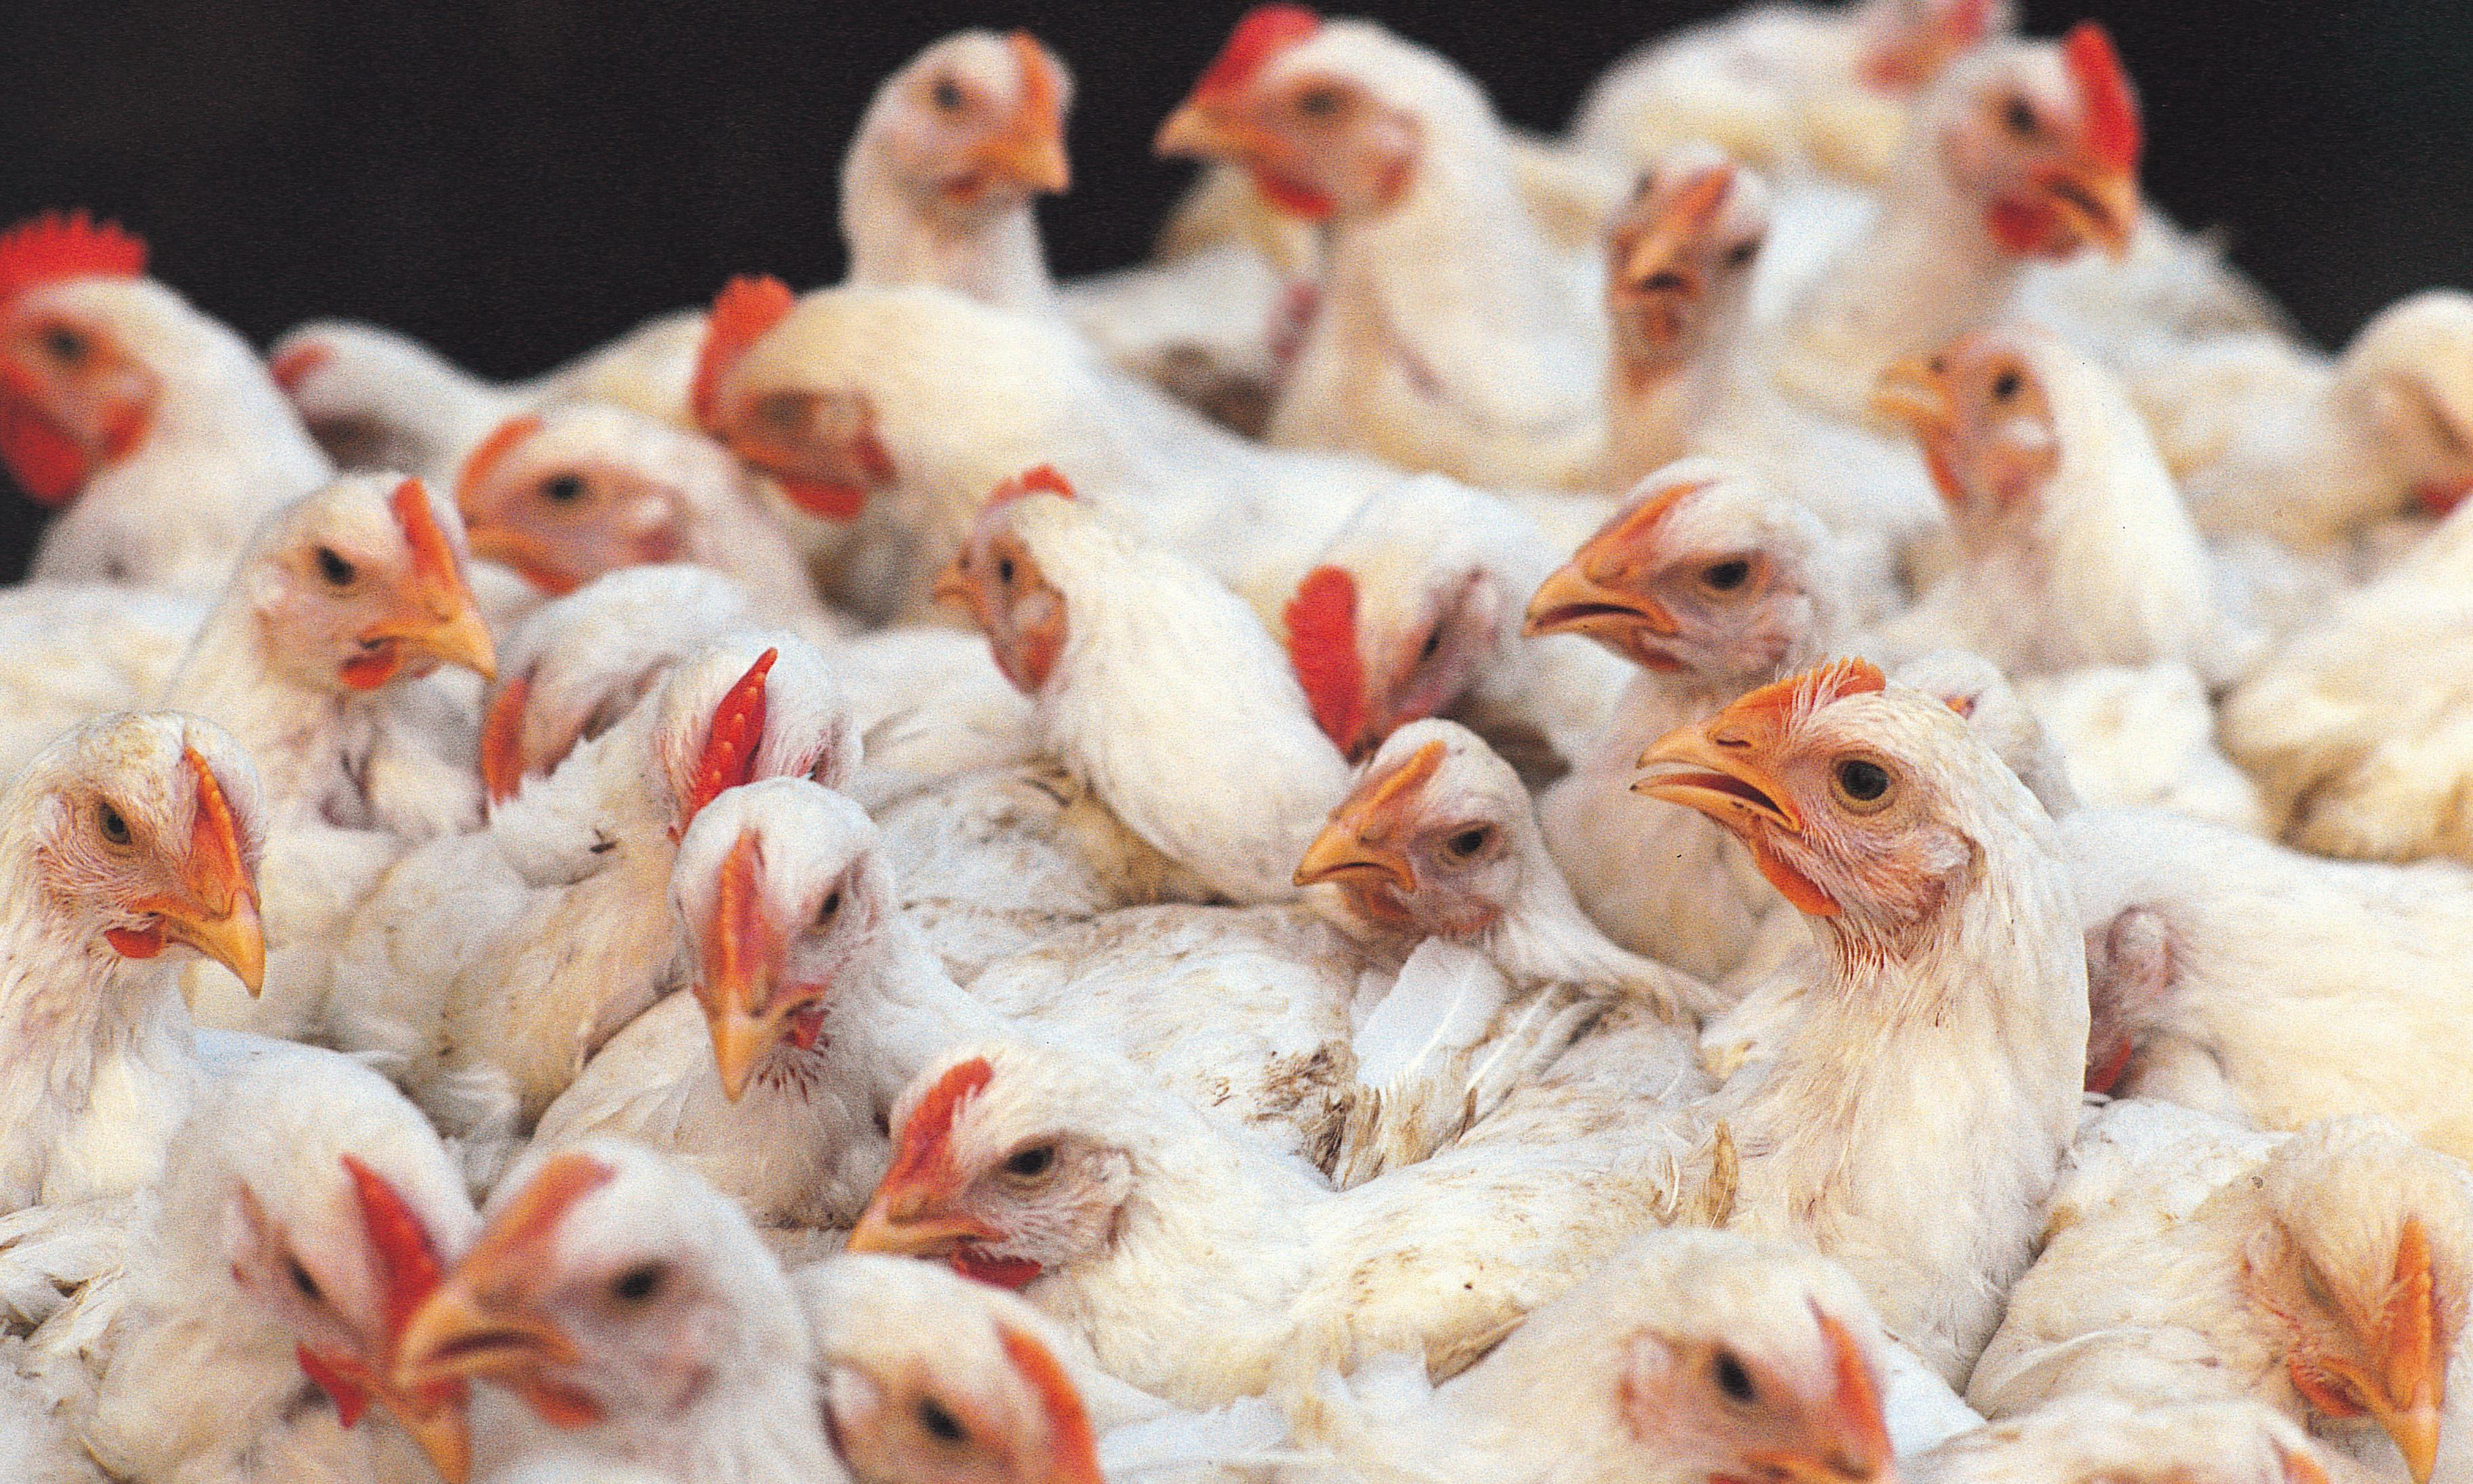 India's farmed chickens dosed with world's strongest antibiotics, study finds